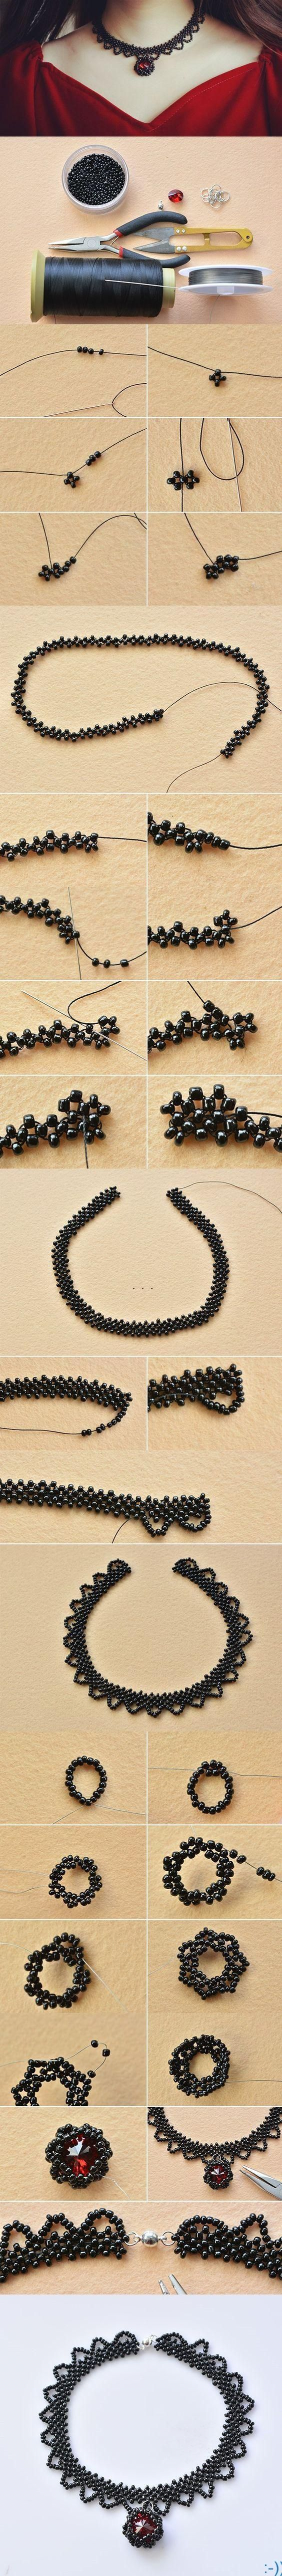 Get ready to show your handiwork. Here is a tutorial for a handmade vintage choker necklace with black seed beads. After you string up and down the black seed beads as shown, complete the choker with a gem or stone you like. You will look absolutely stunning. source : pinterest